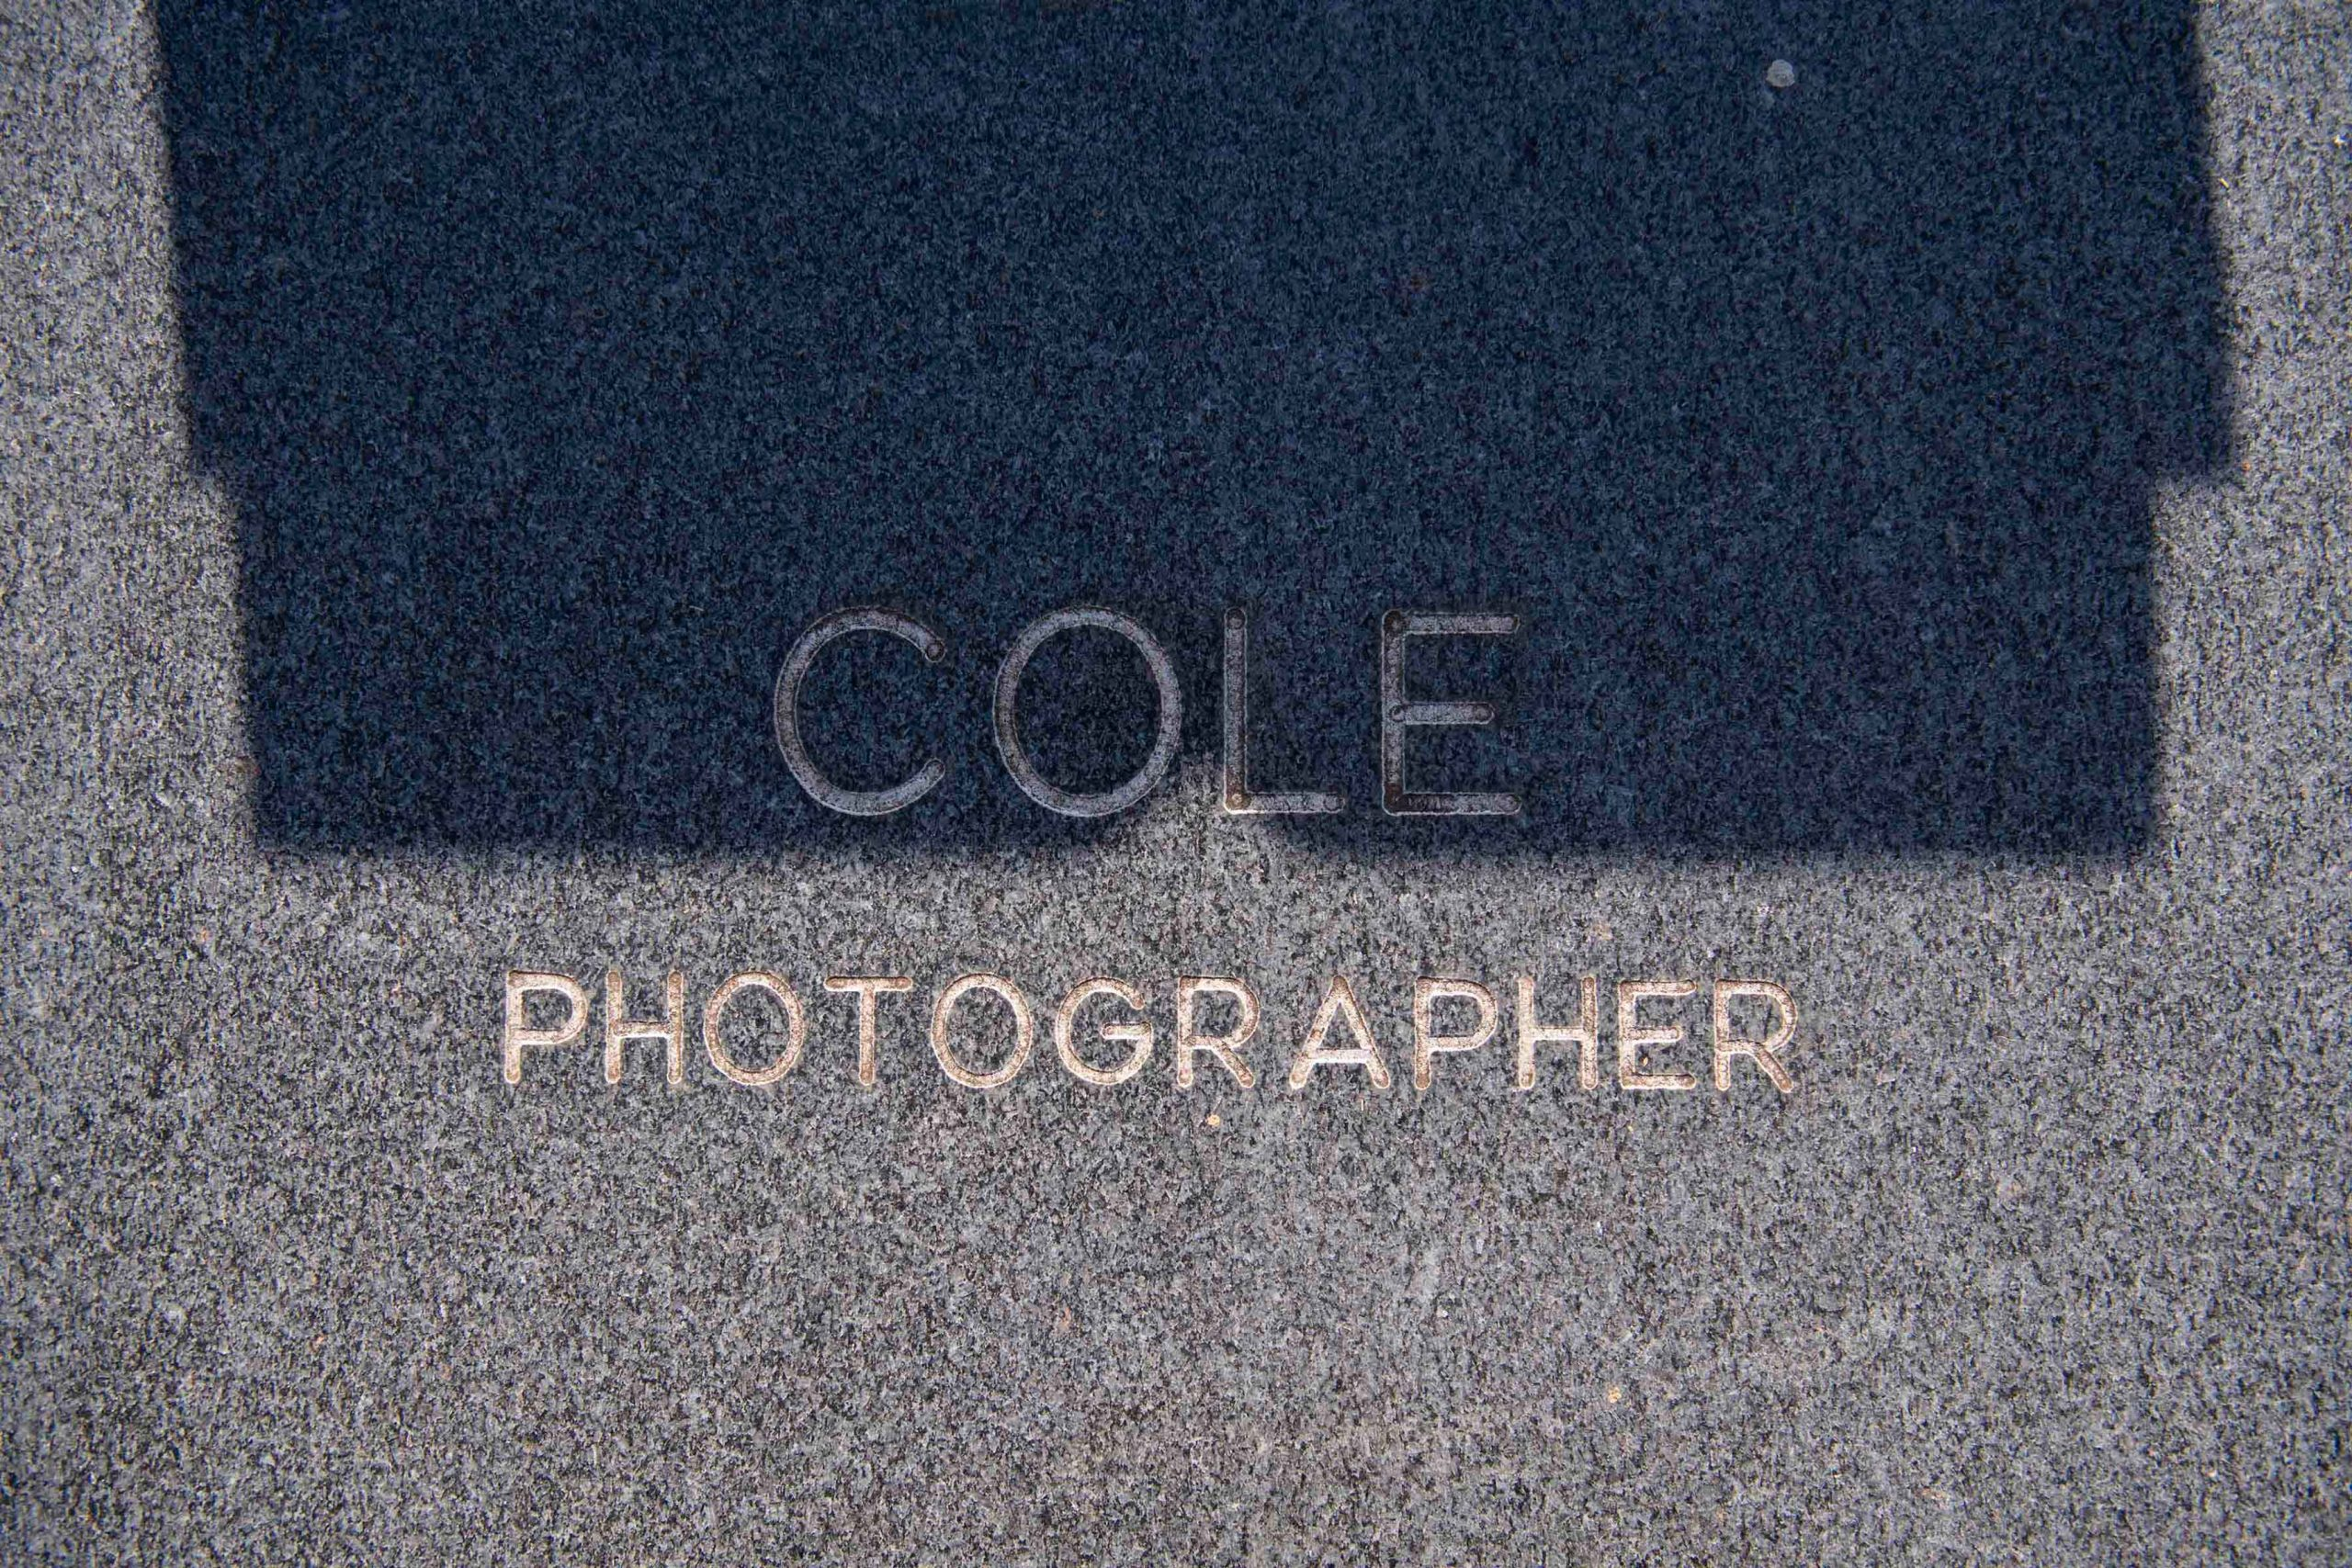 3 December 2019: The stark inscription on the slab of Ernest Cole's grave.